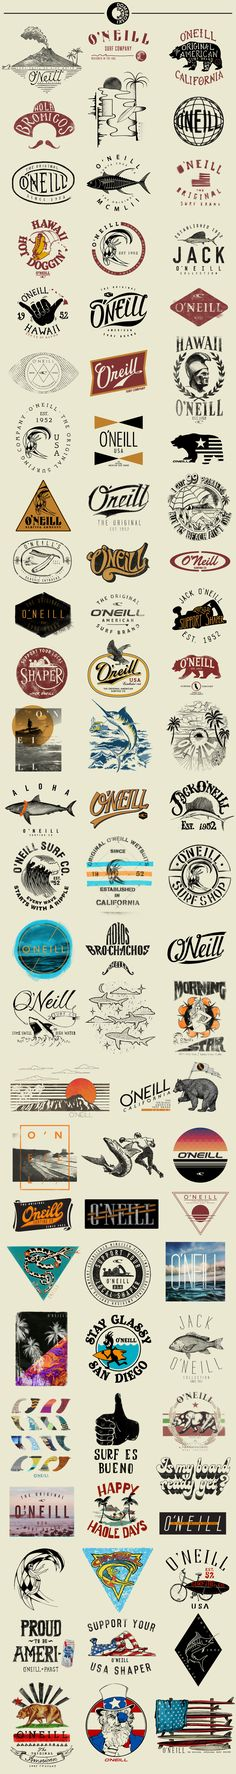 O'Neill is known as the Original American Surfing Company. It began as a  wetsuit company and surf shop, founded by Jack O'Neill in 1952. It  continues to be one of the most sought-after surf brands today.  Here's a compilation of some more recent t-shirt graphics.